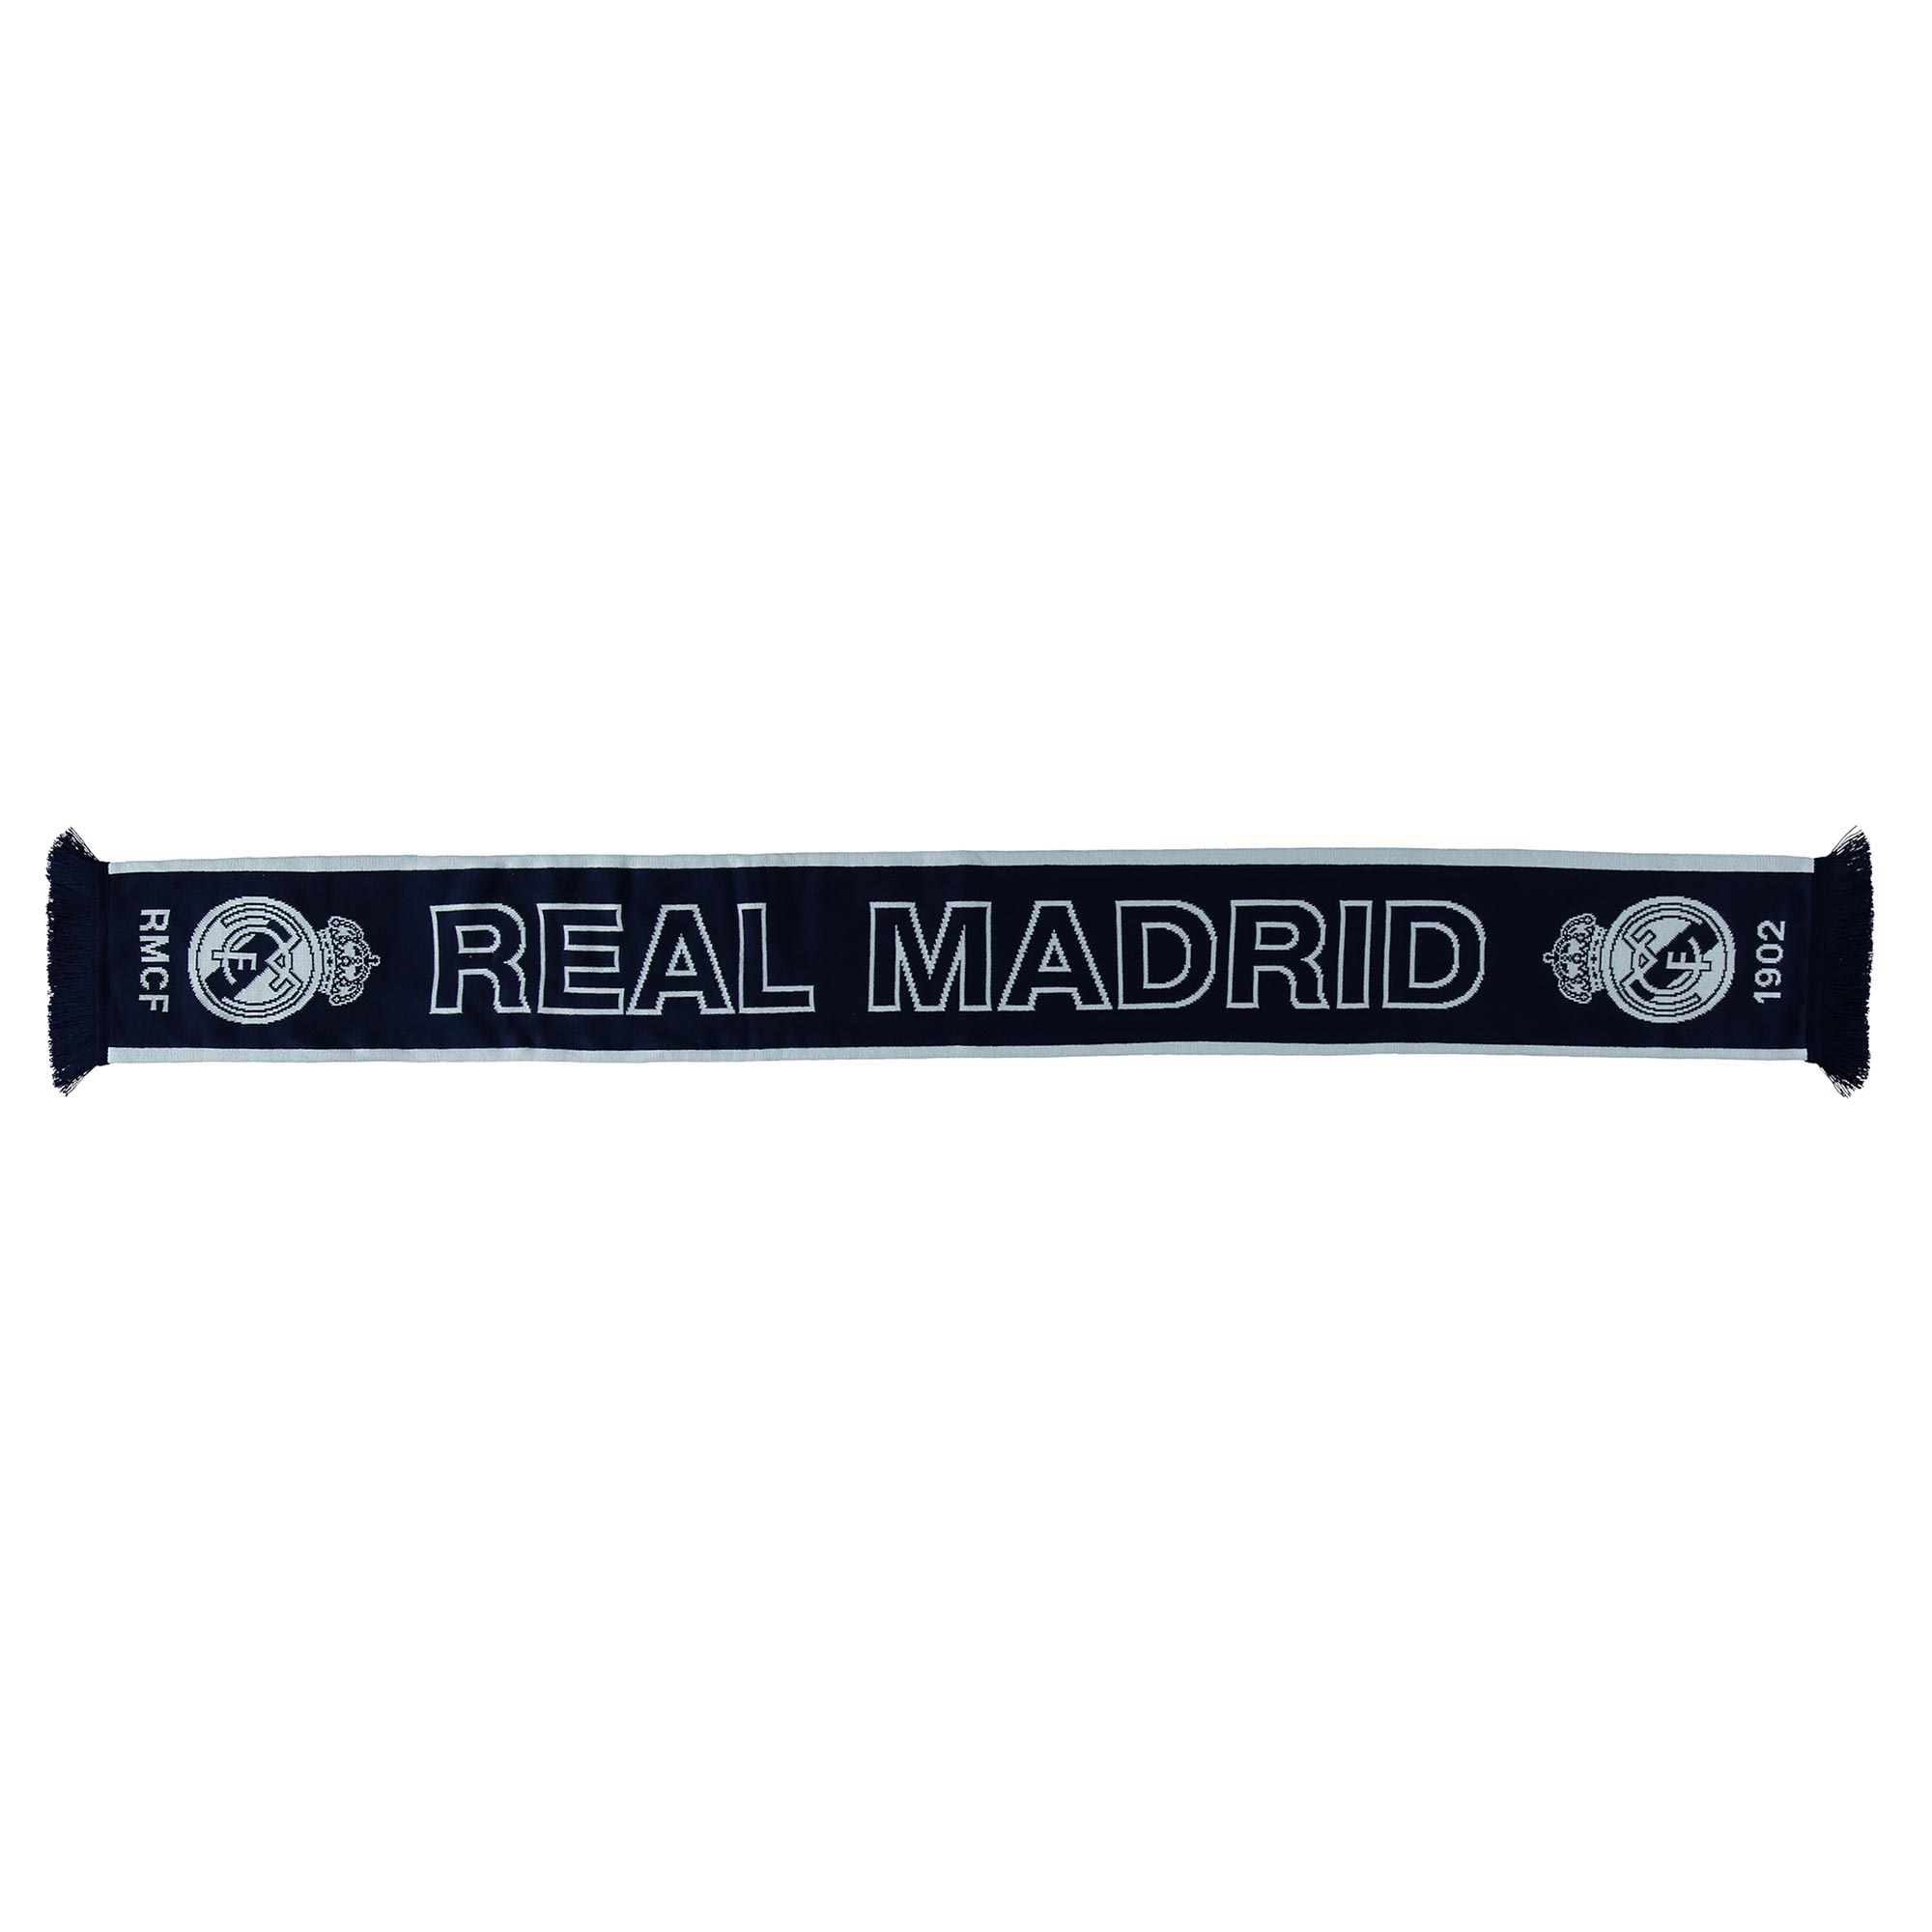 Écharpe de fan Since 1902 Real Madrid - Bleu marine - Adulte